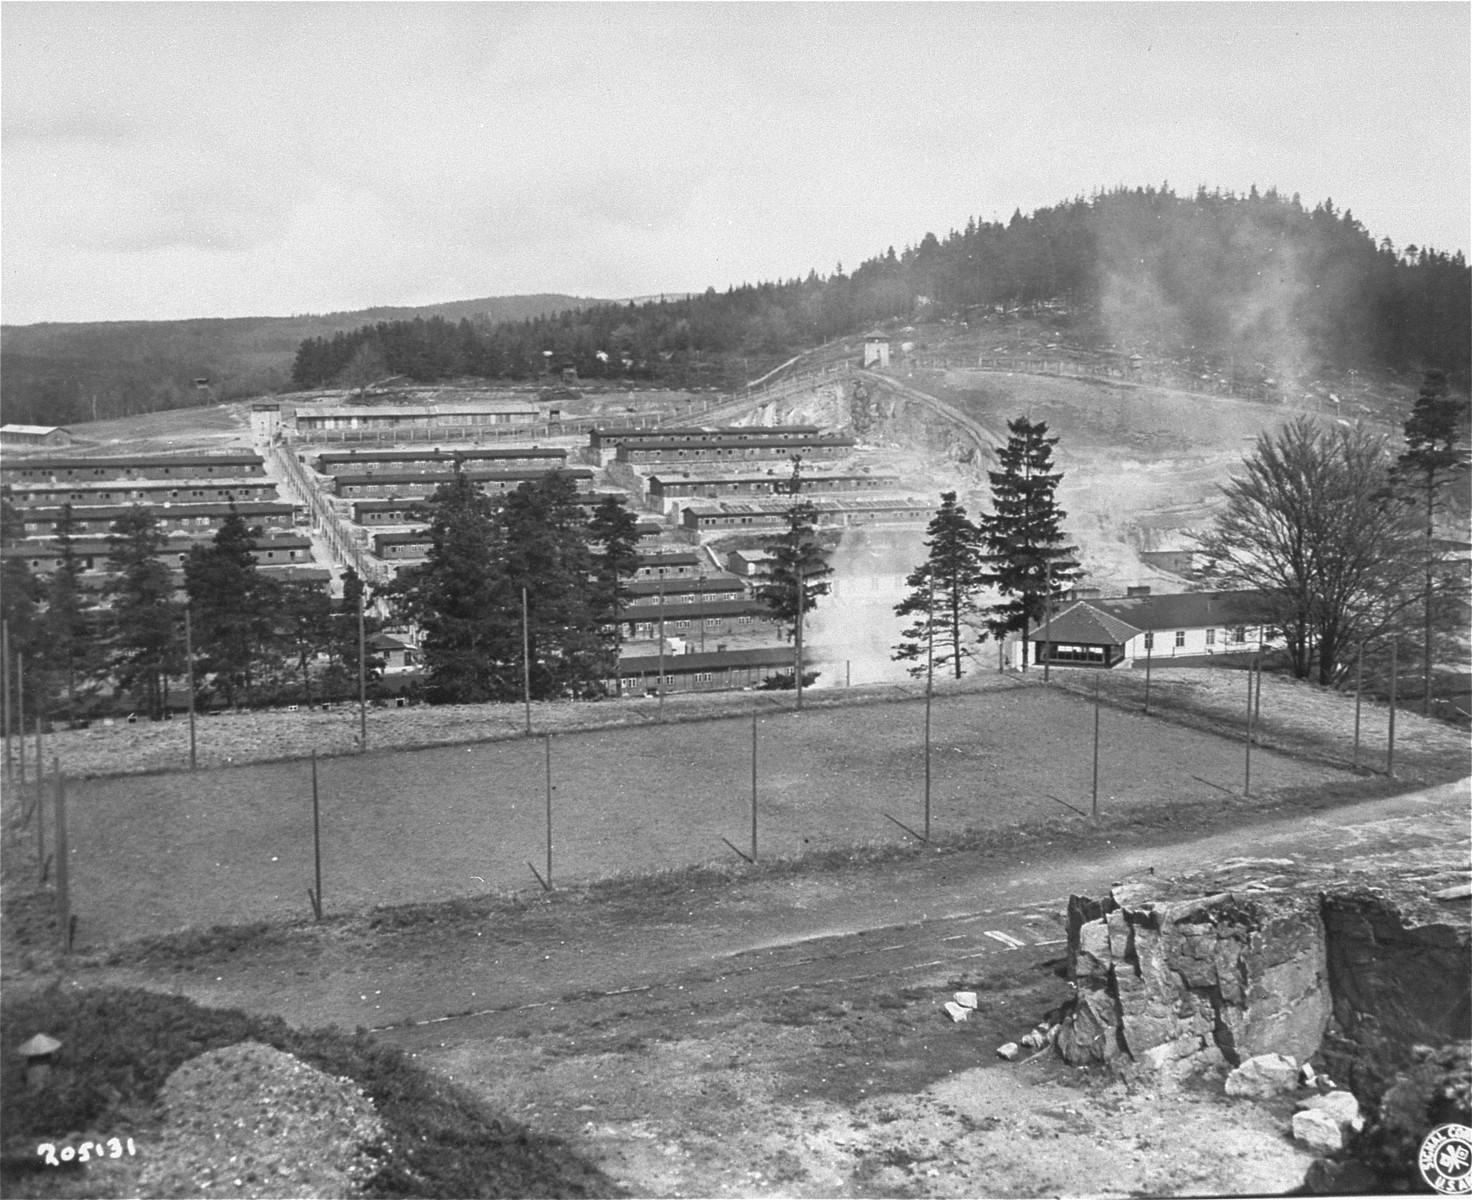 The Flossenbuerg concentration camp after liberation.